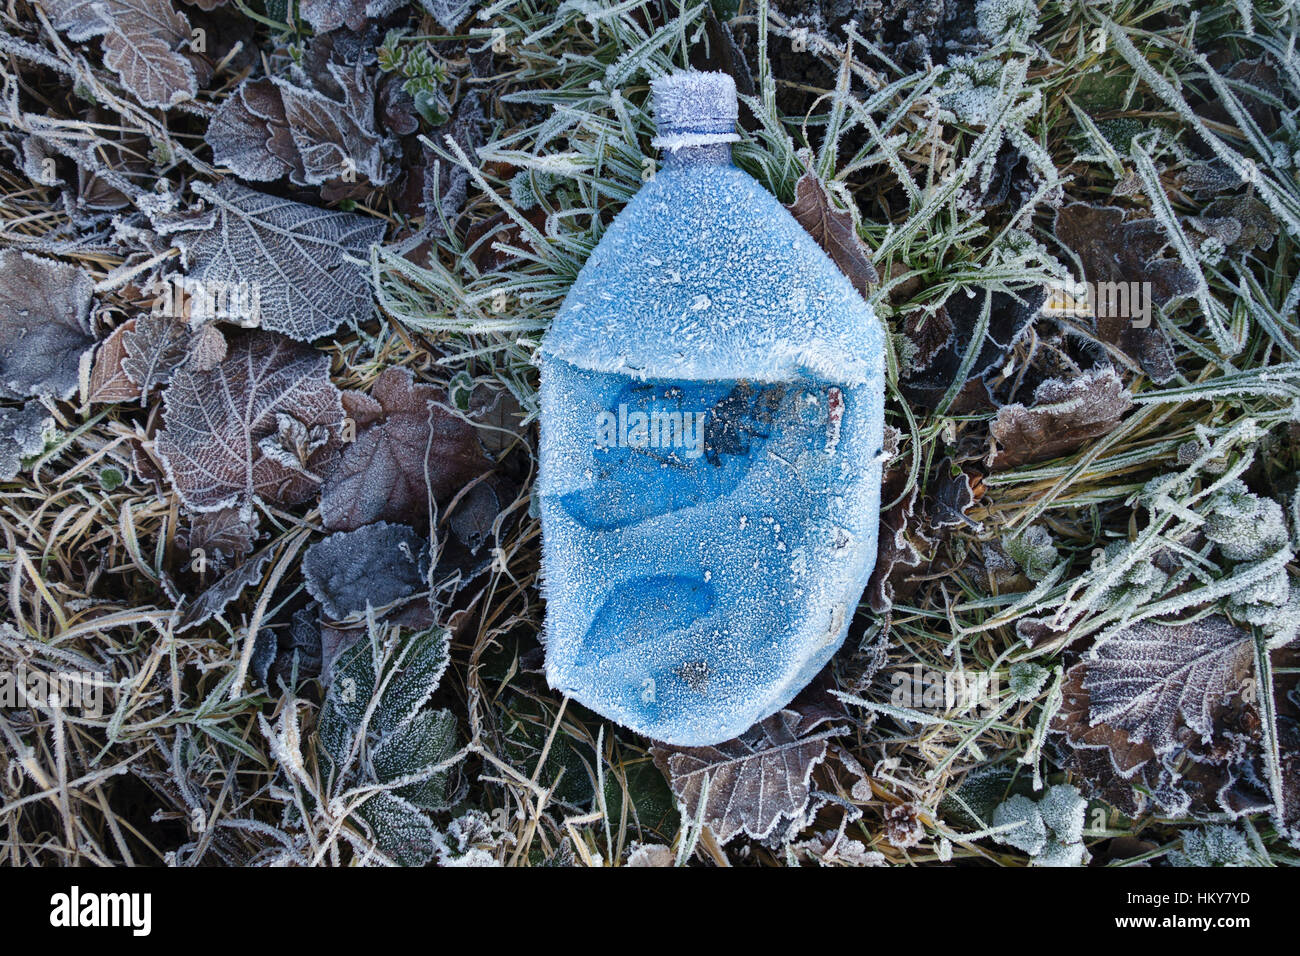 A blue plastic drinks bottle covered in frost on a roadside verge in winter Stock Photo